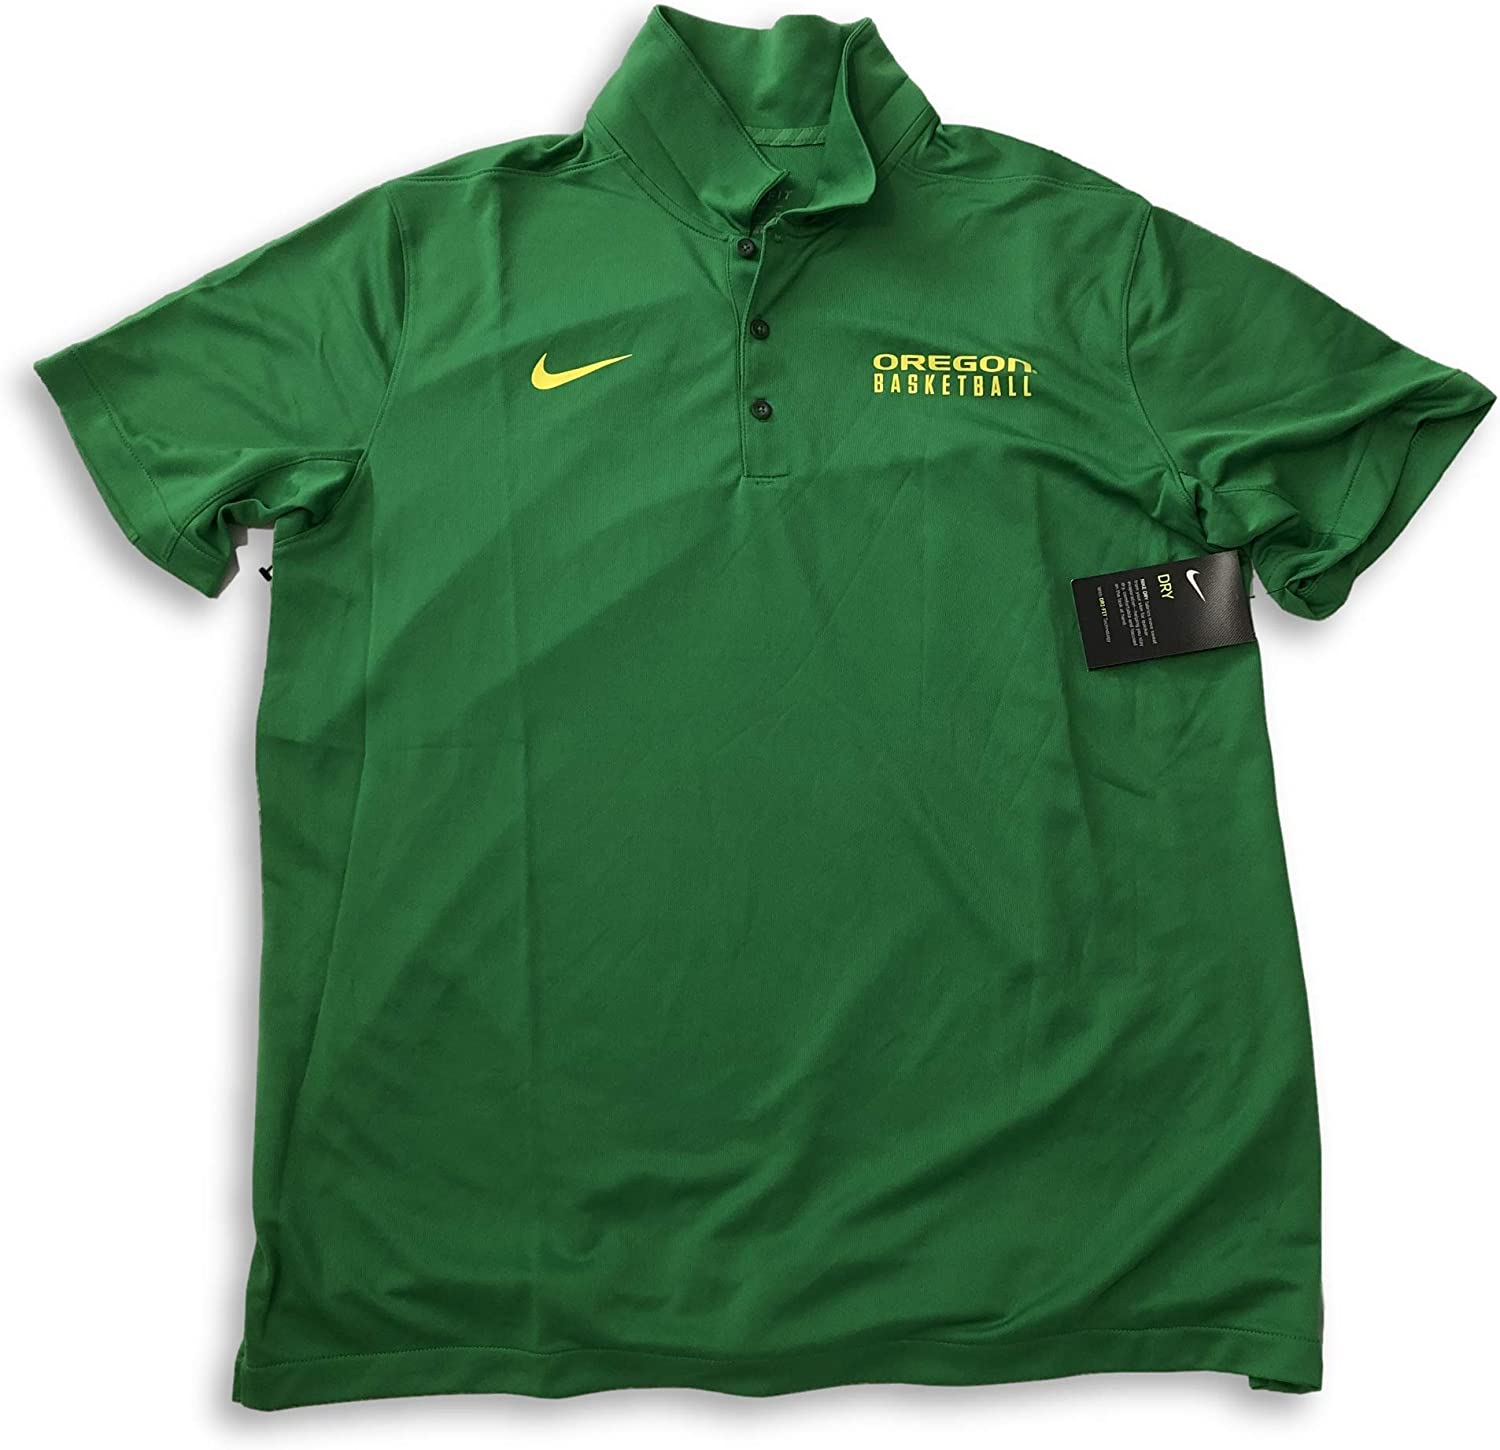 Nike Oregon Ducks Dri-Fit Basketball Performance Apple Green Polo Shirt (X-Large)